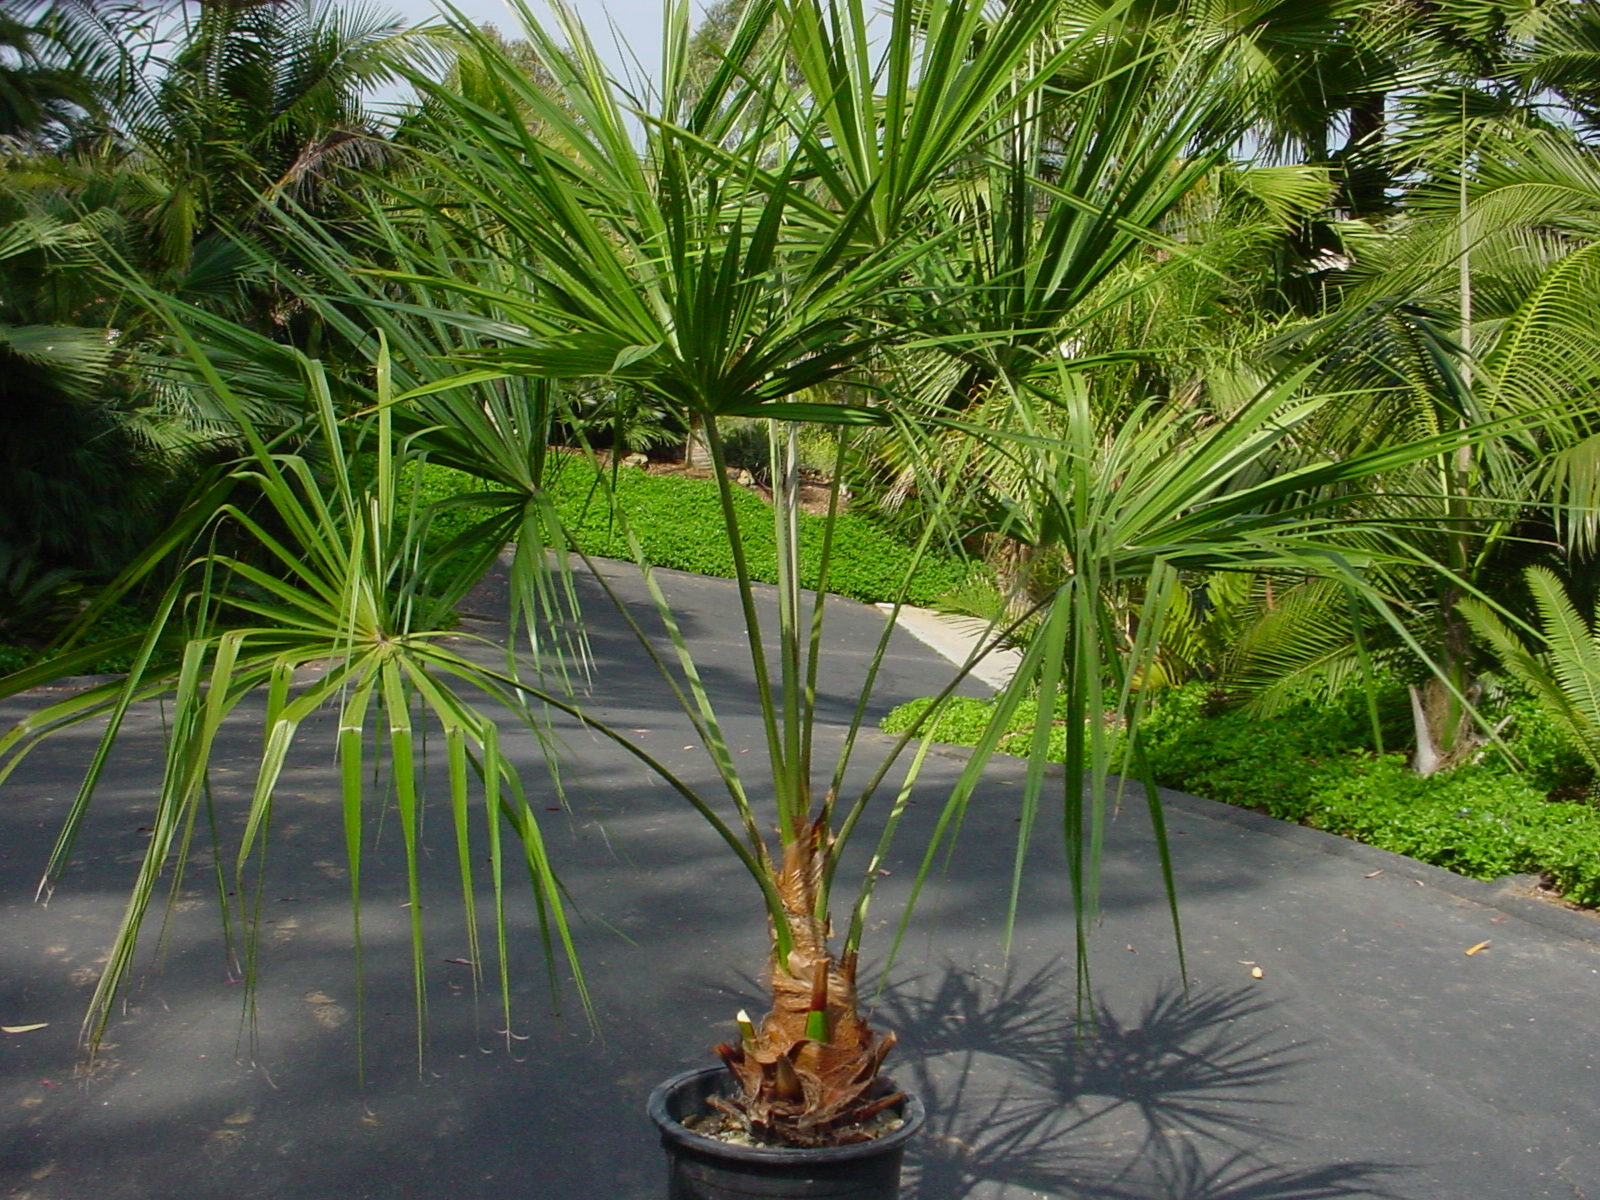 Livistona decora - ribbon palm